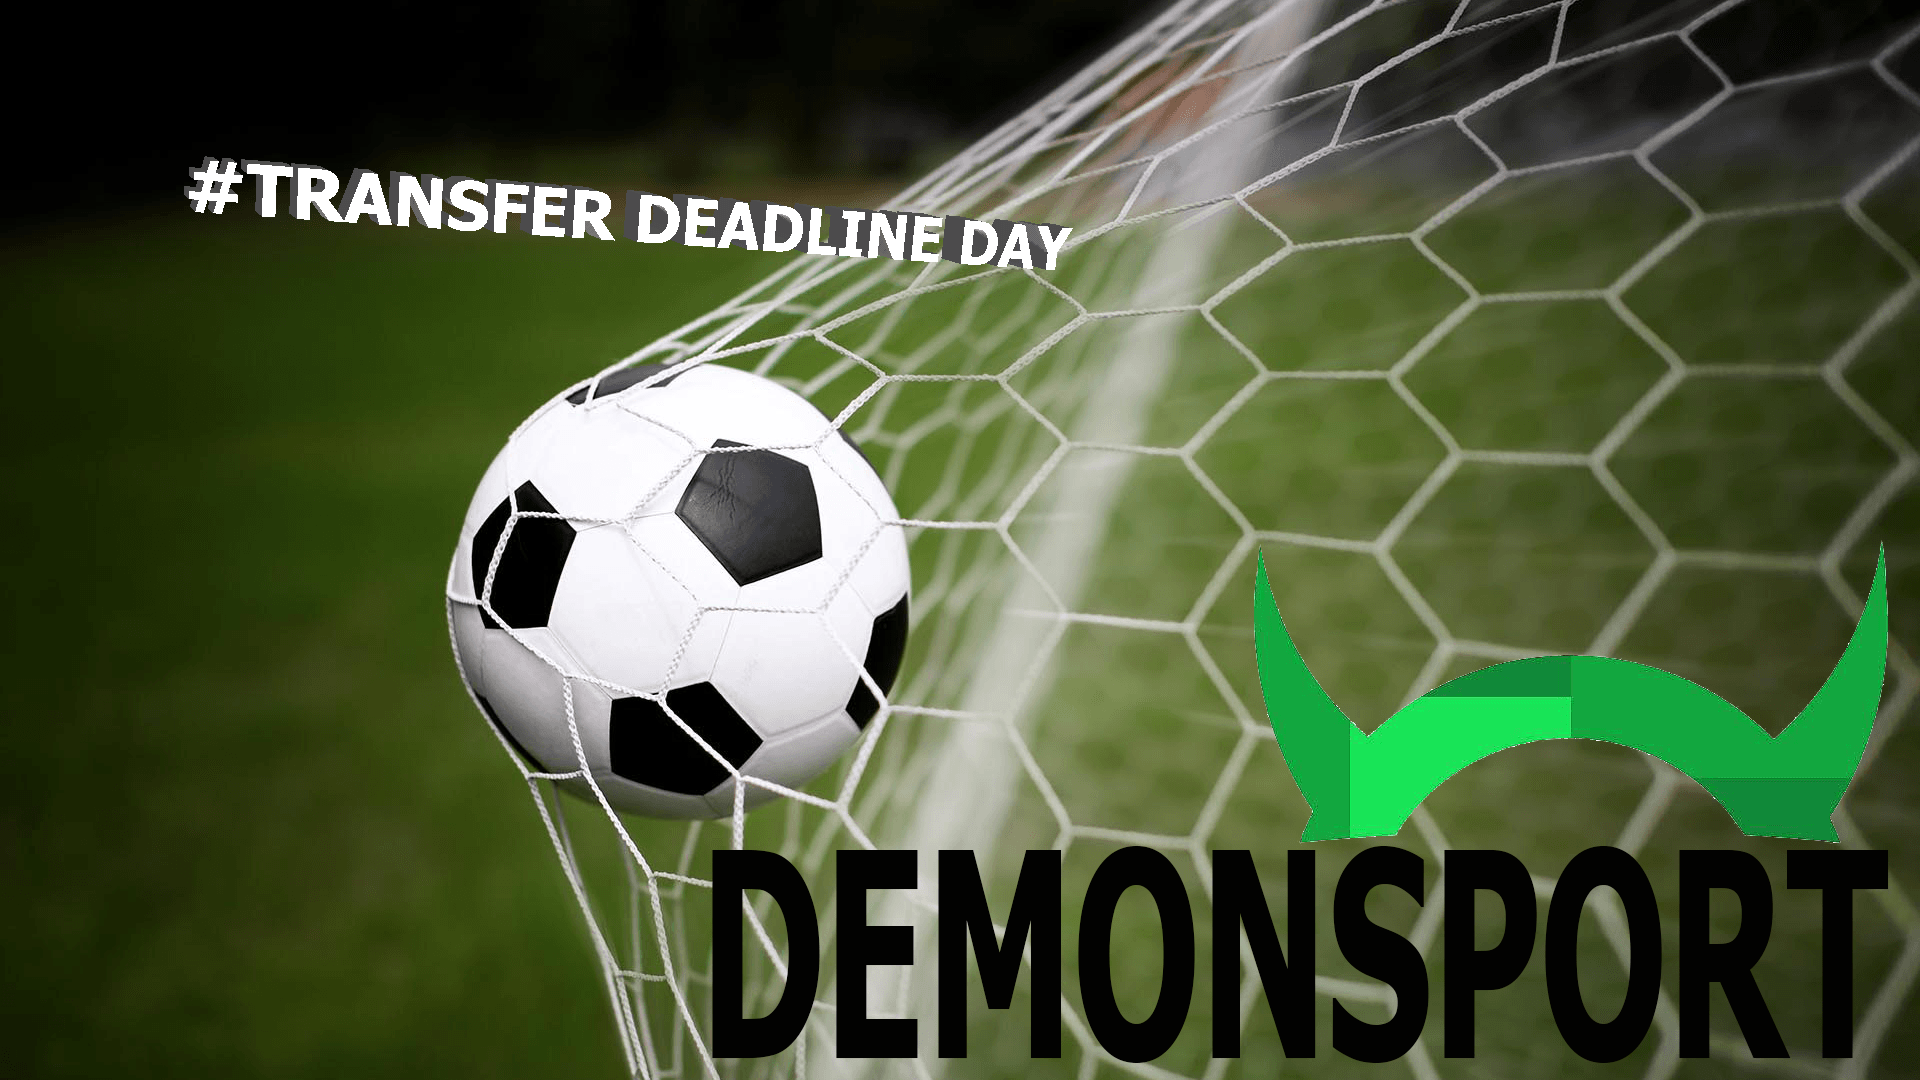 Deadline Day is upon us